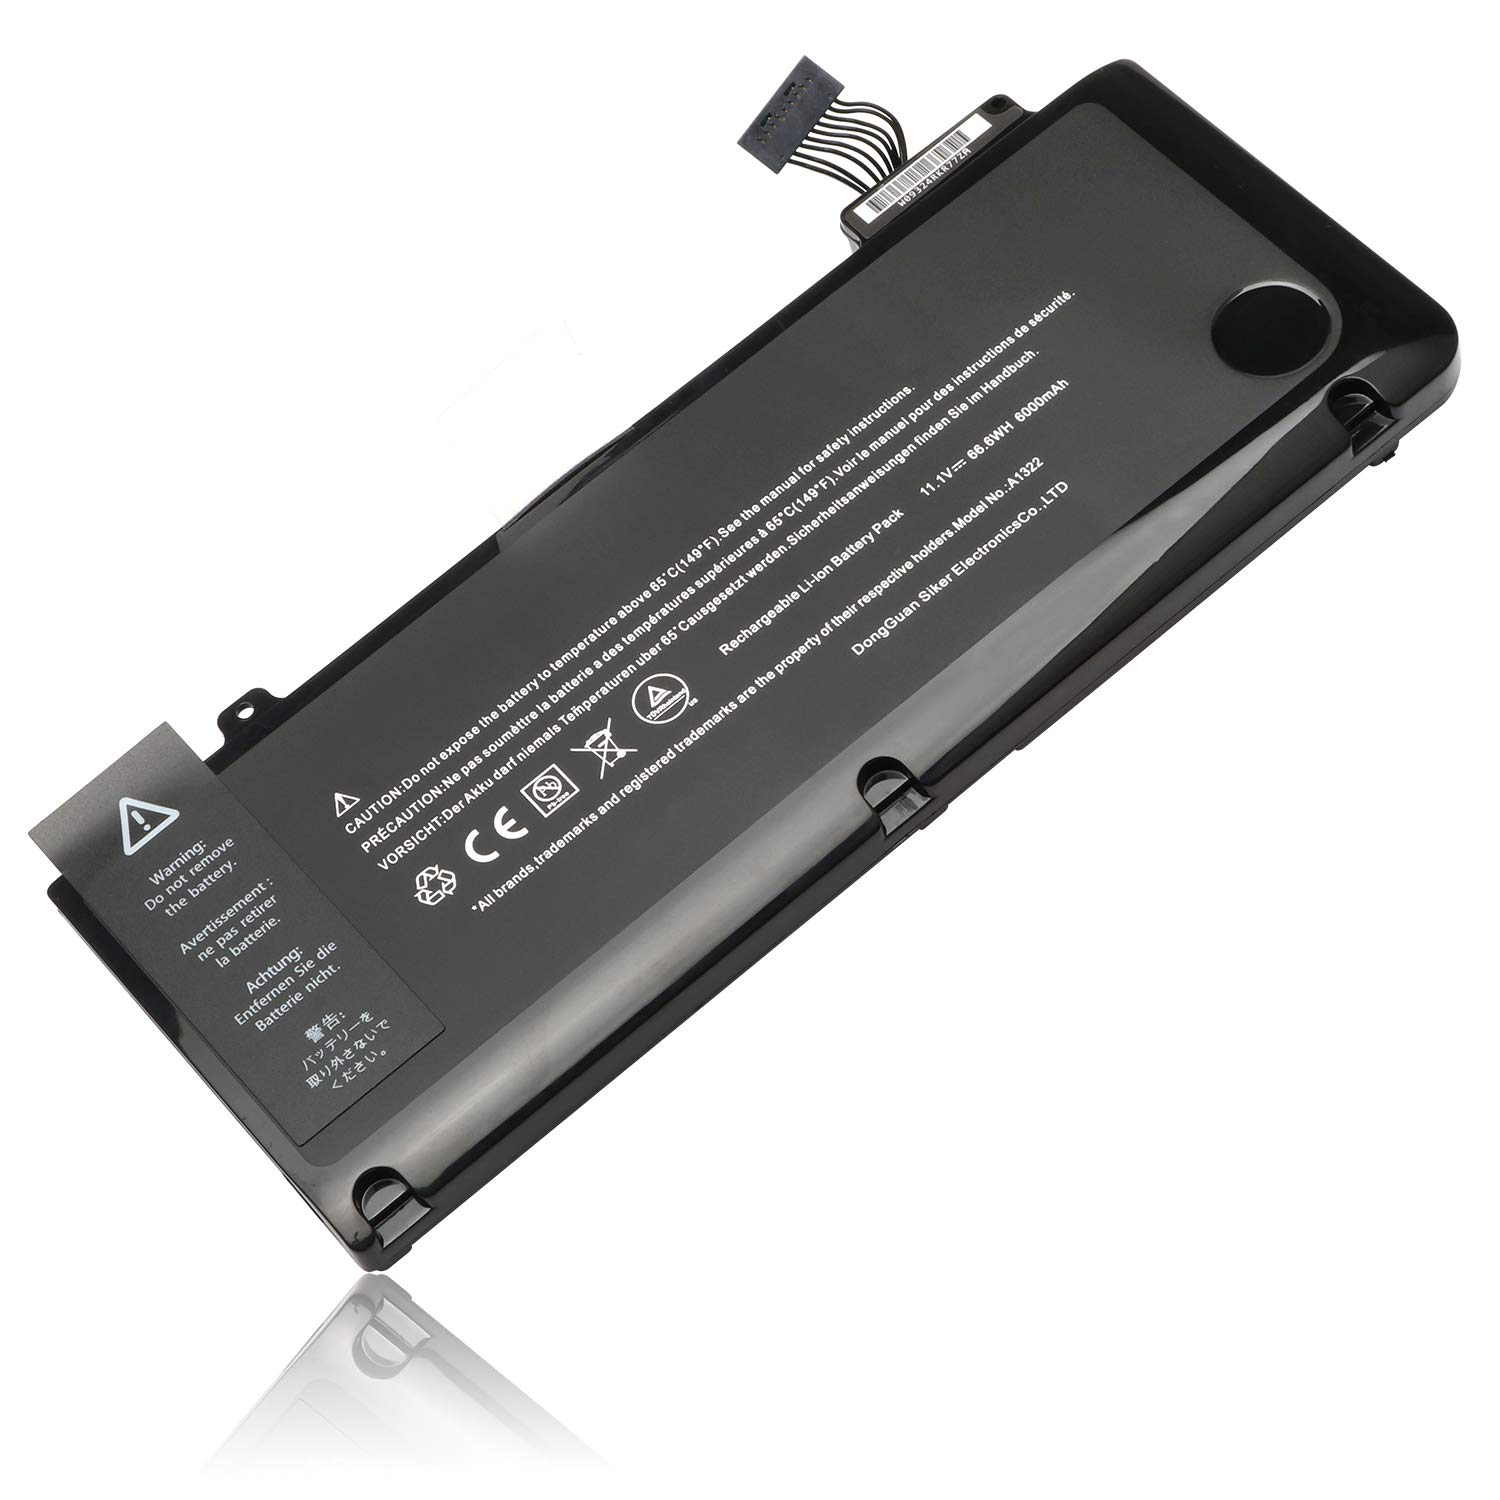 Bateria A1322 A1278 MacBook Pro 13 Mid 2012 2010 2009 Early